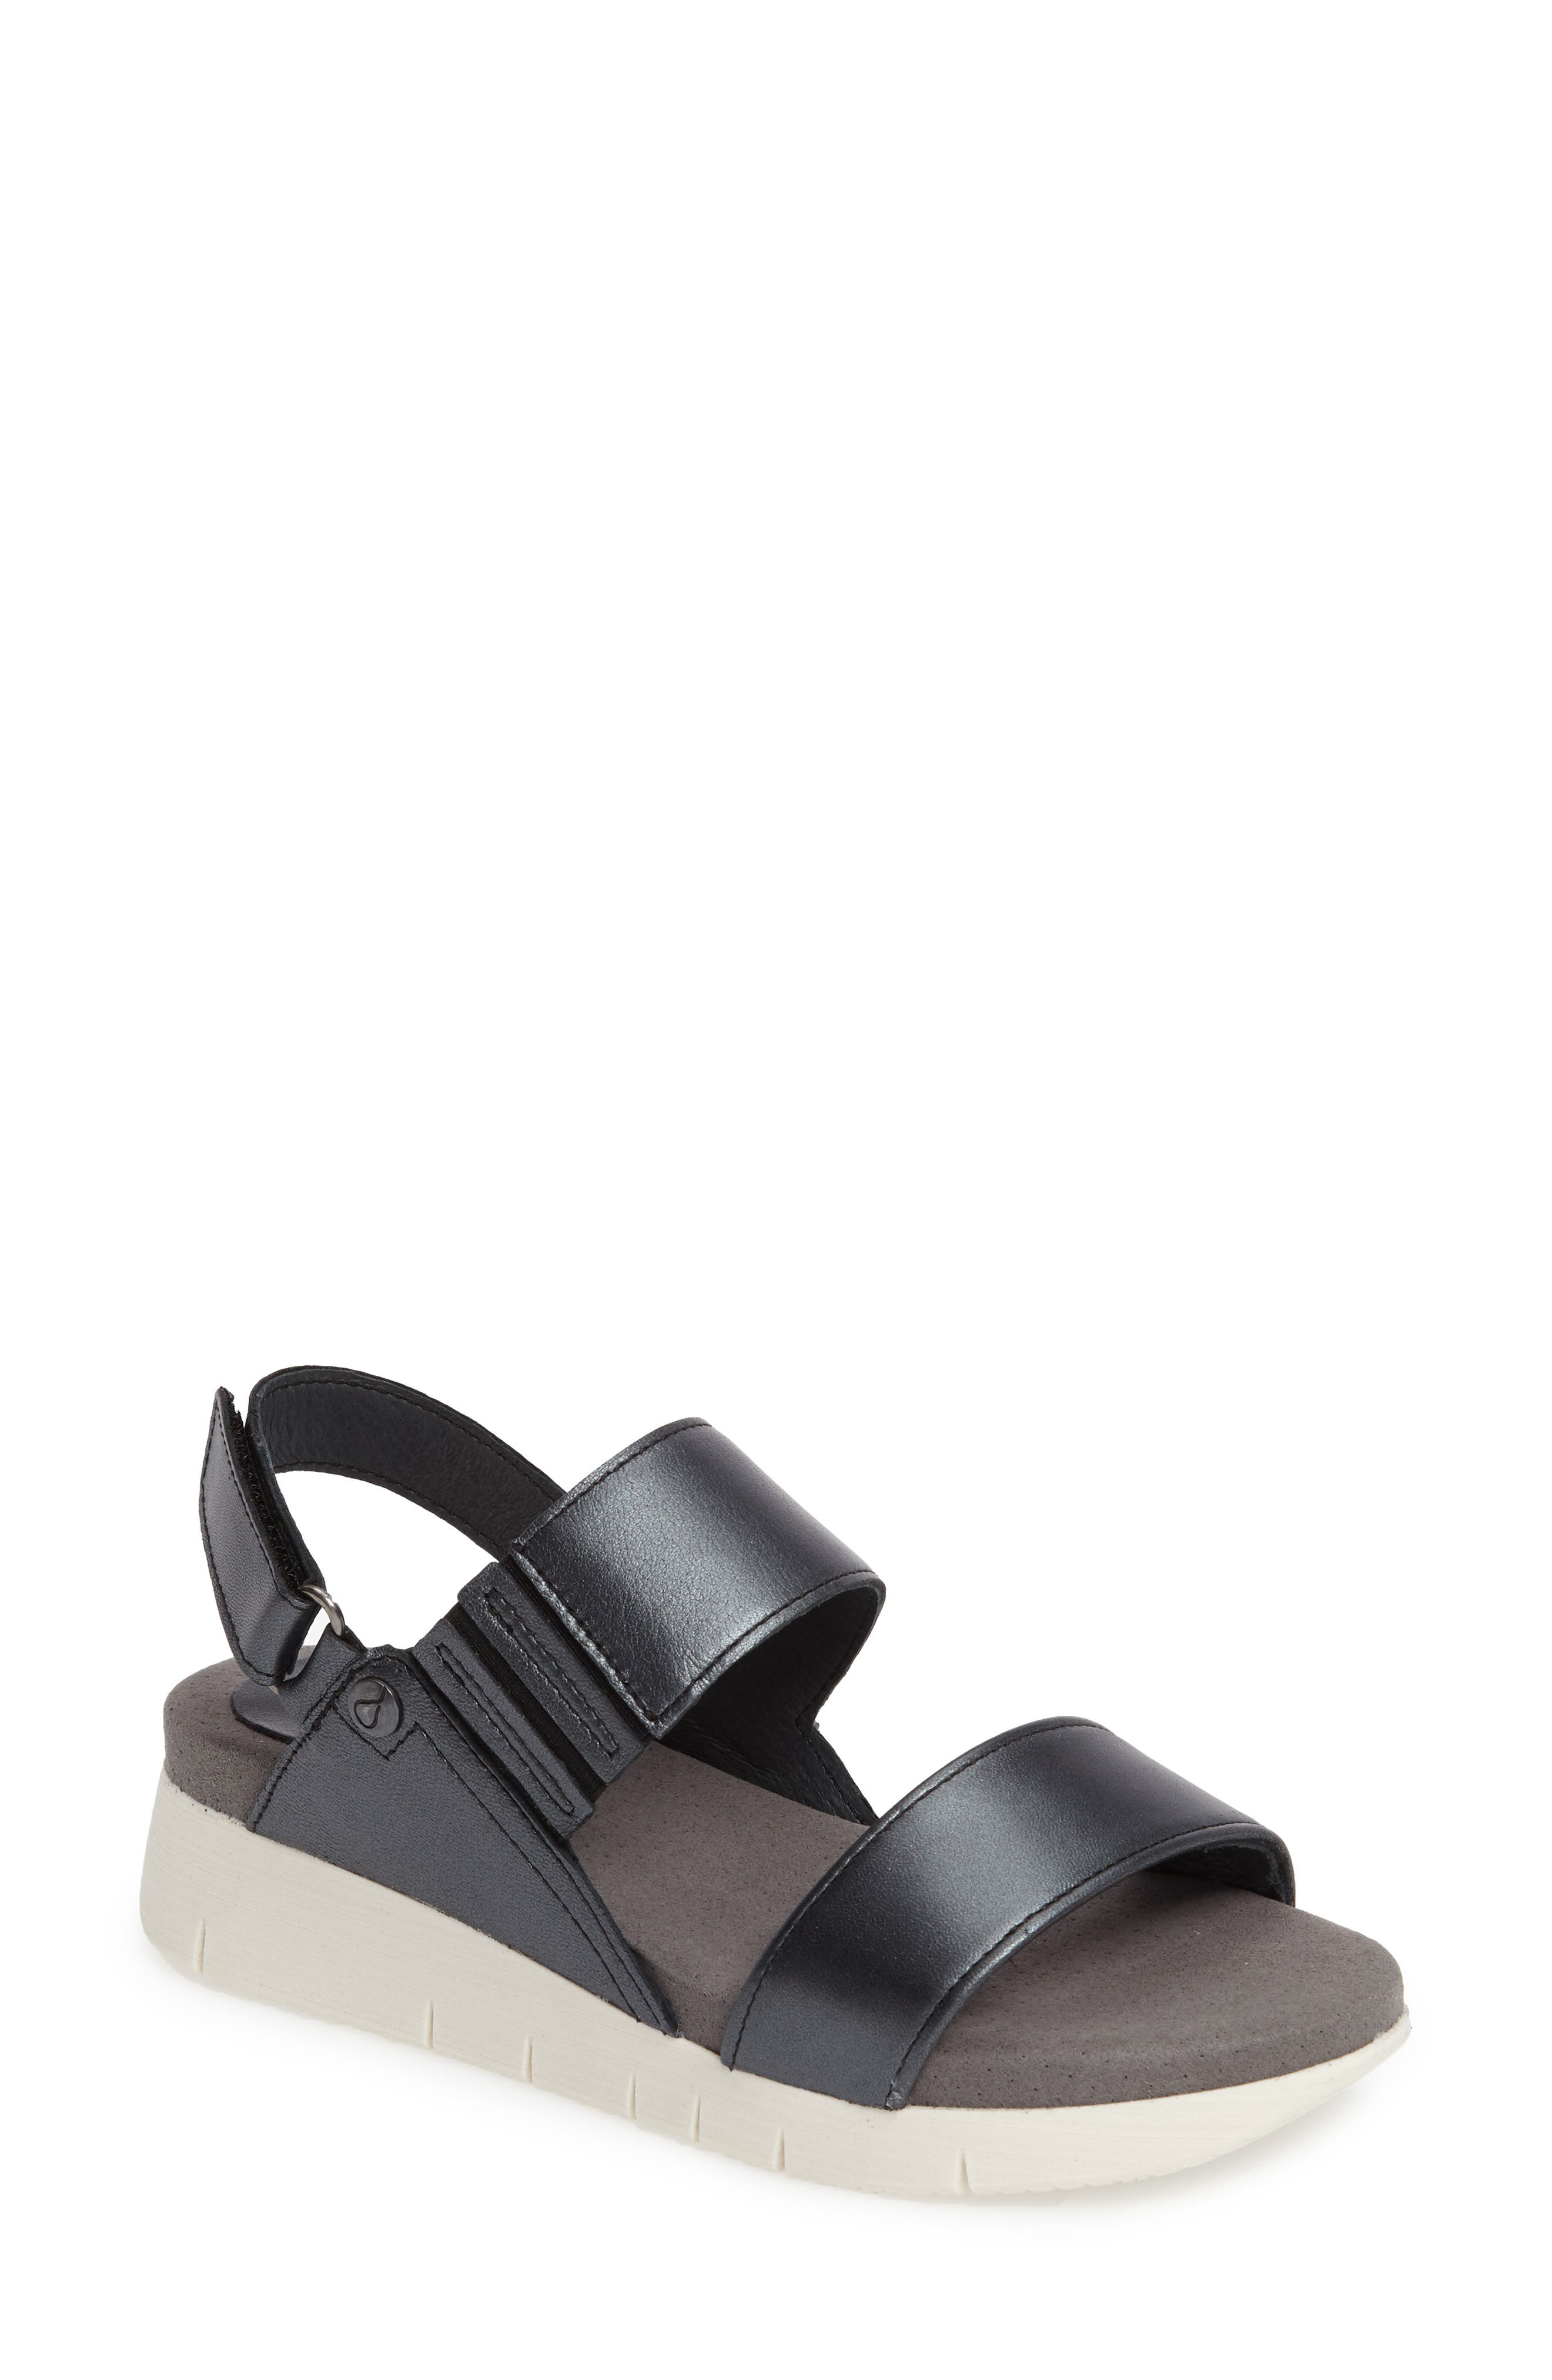 Bos. & Co. Payge Wedge Sandal (Women)